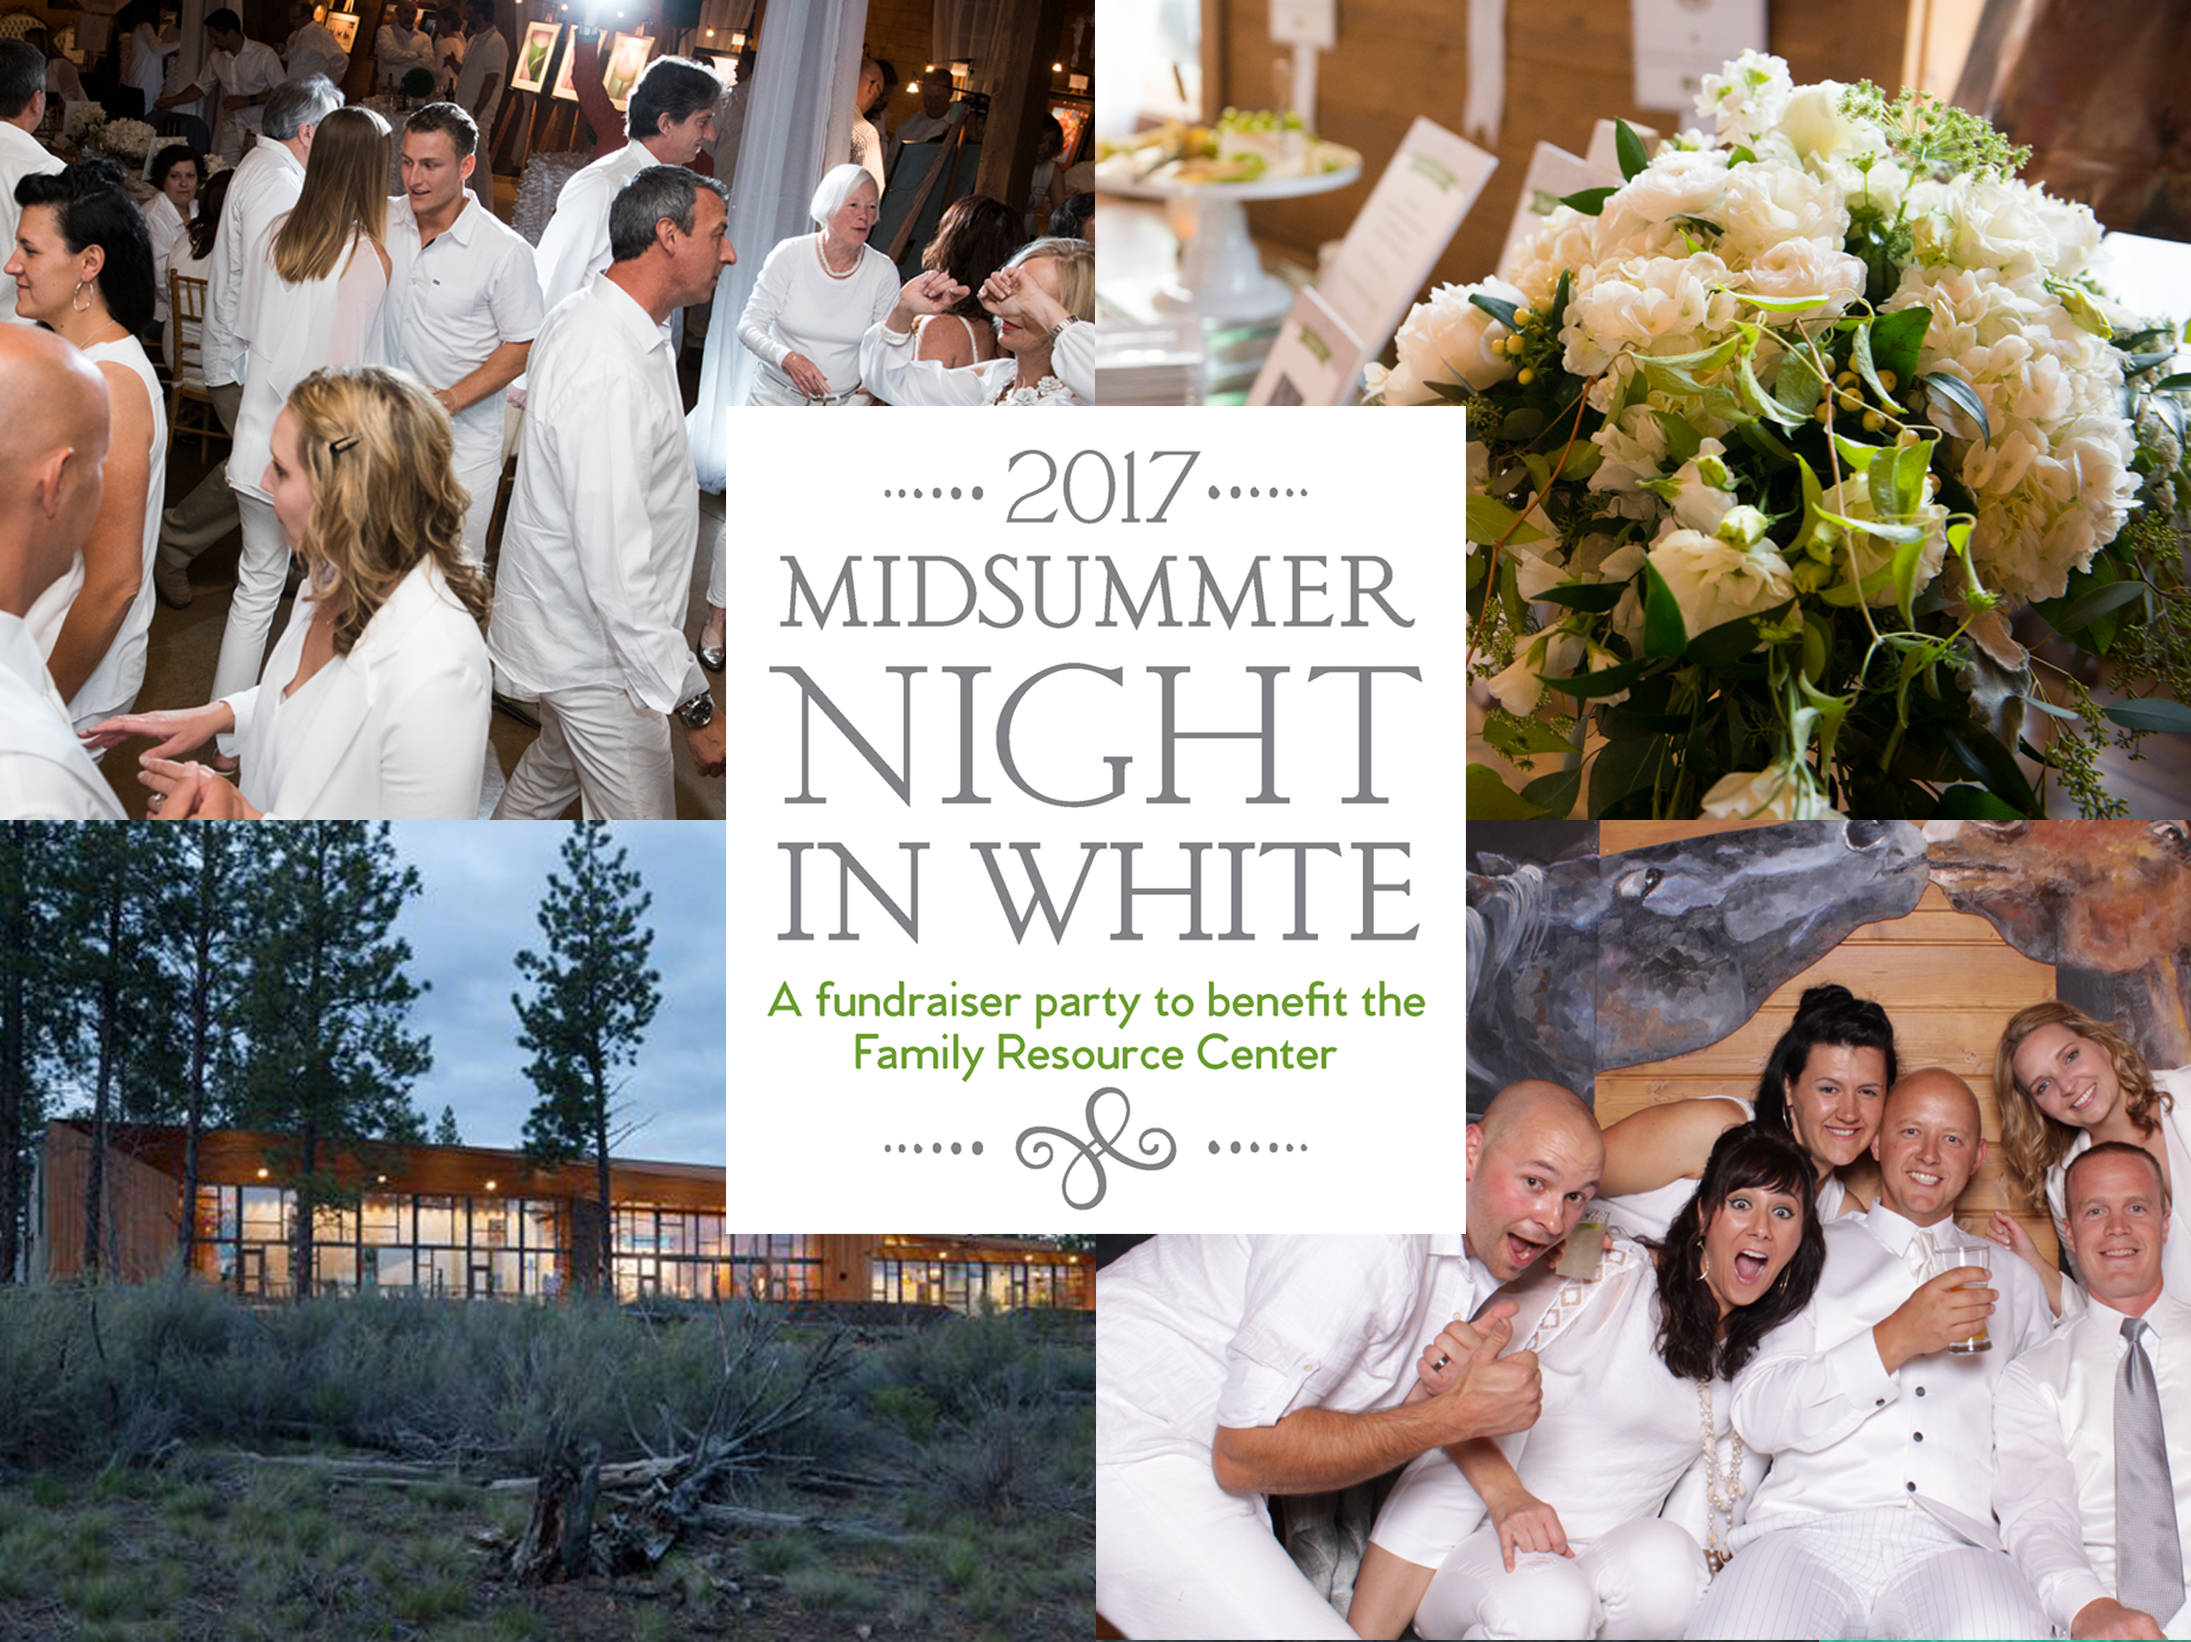 Tickets are on sale for our Midsummer Night in White Fundraiser!